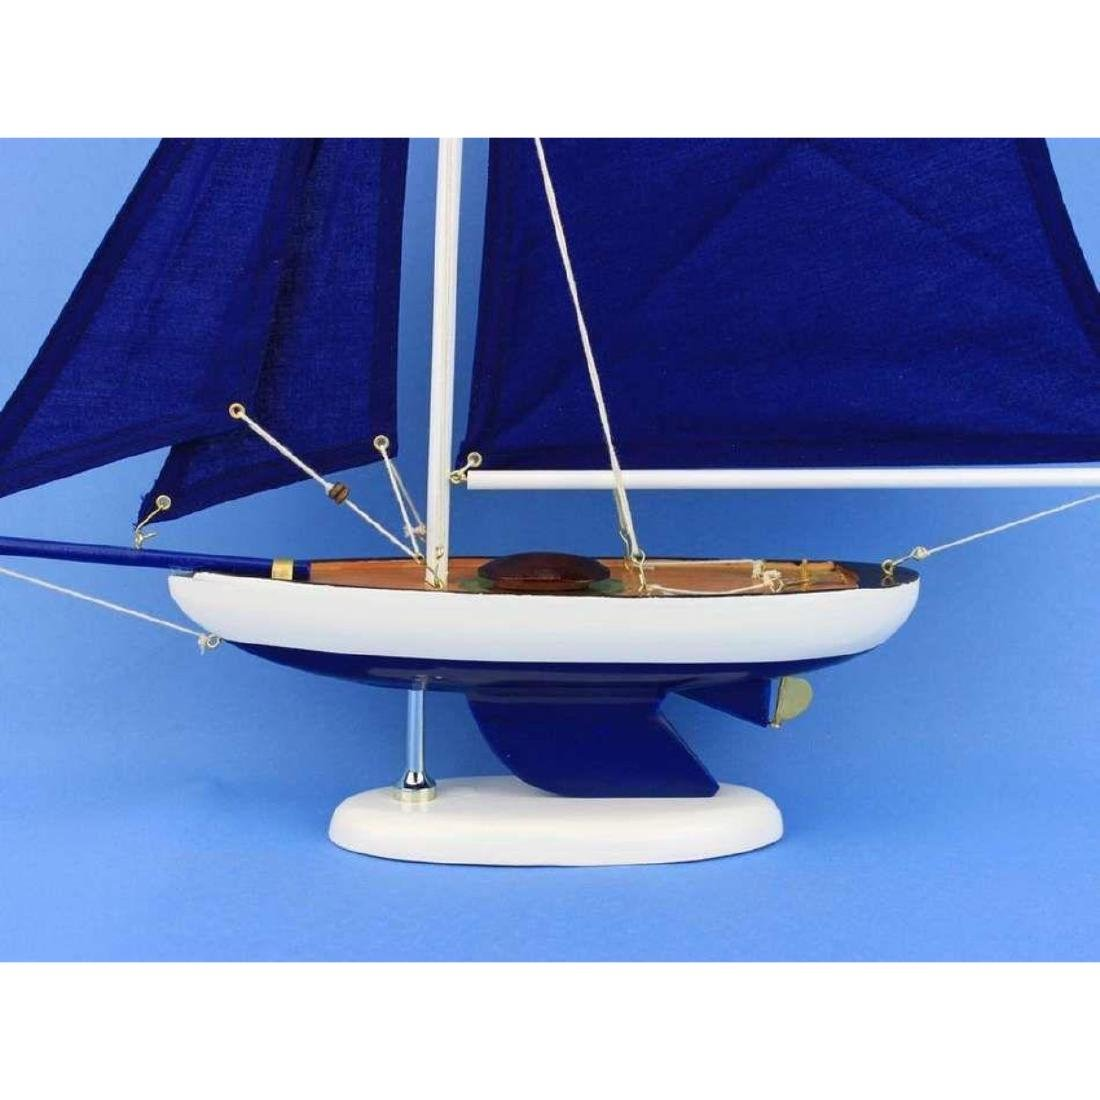 Wooden Bermuda Sloop Dark Blue Model Sailboat - 2